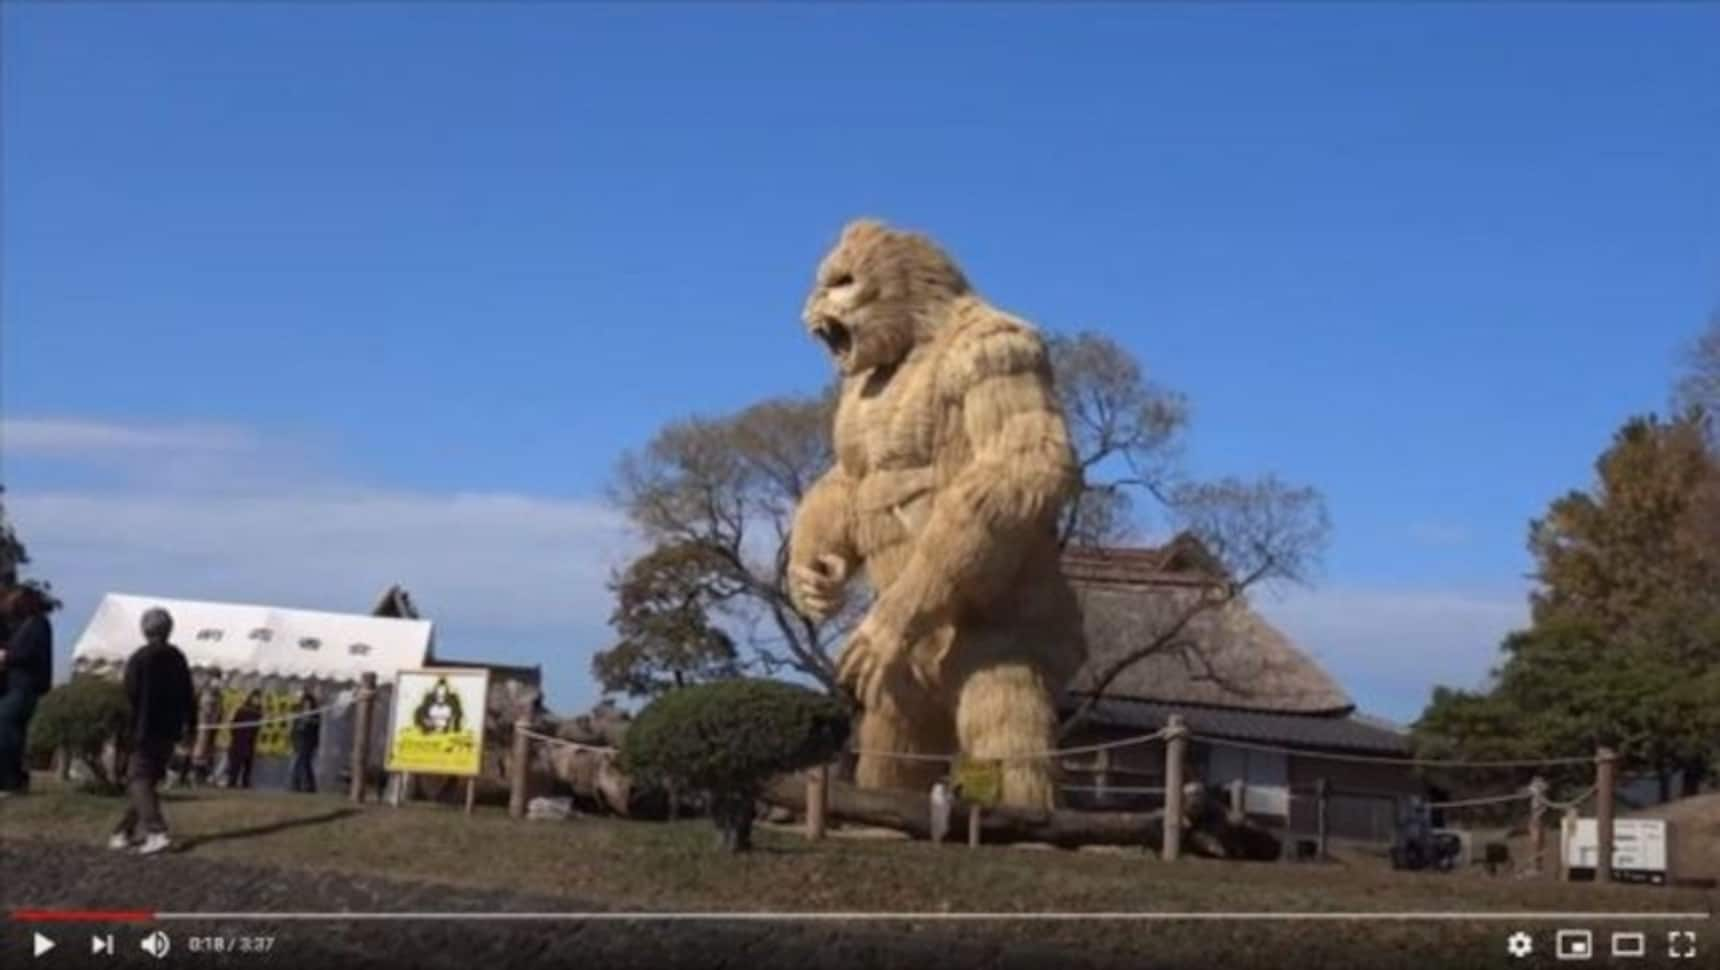 Fukuoka's Giant Gorilla Is Symbol of Strength